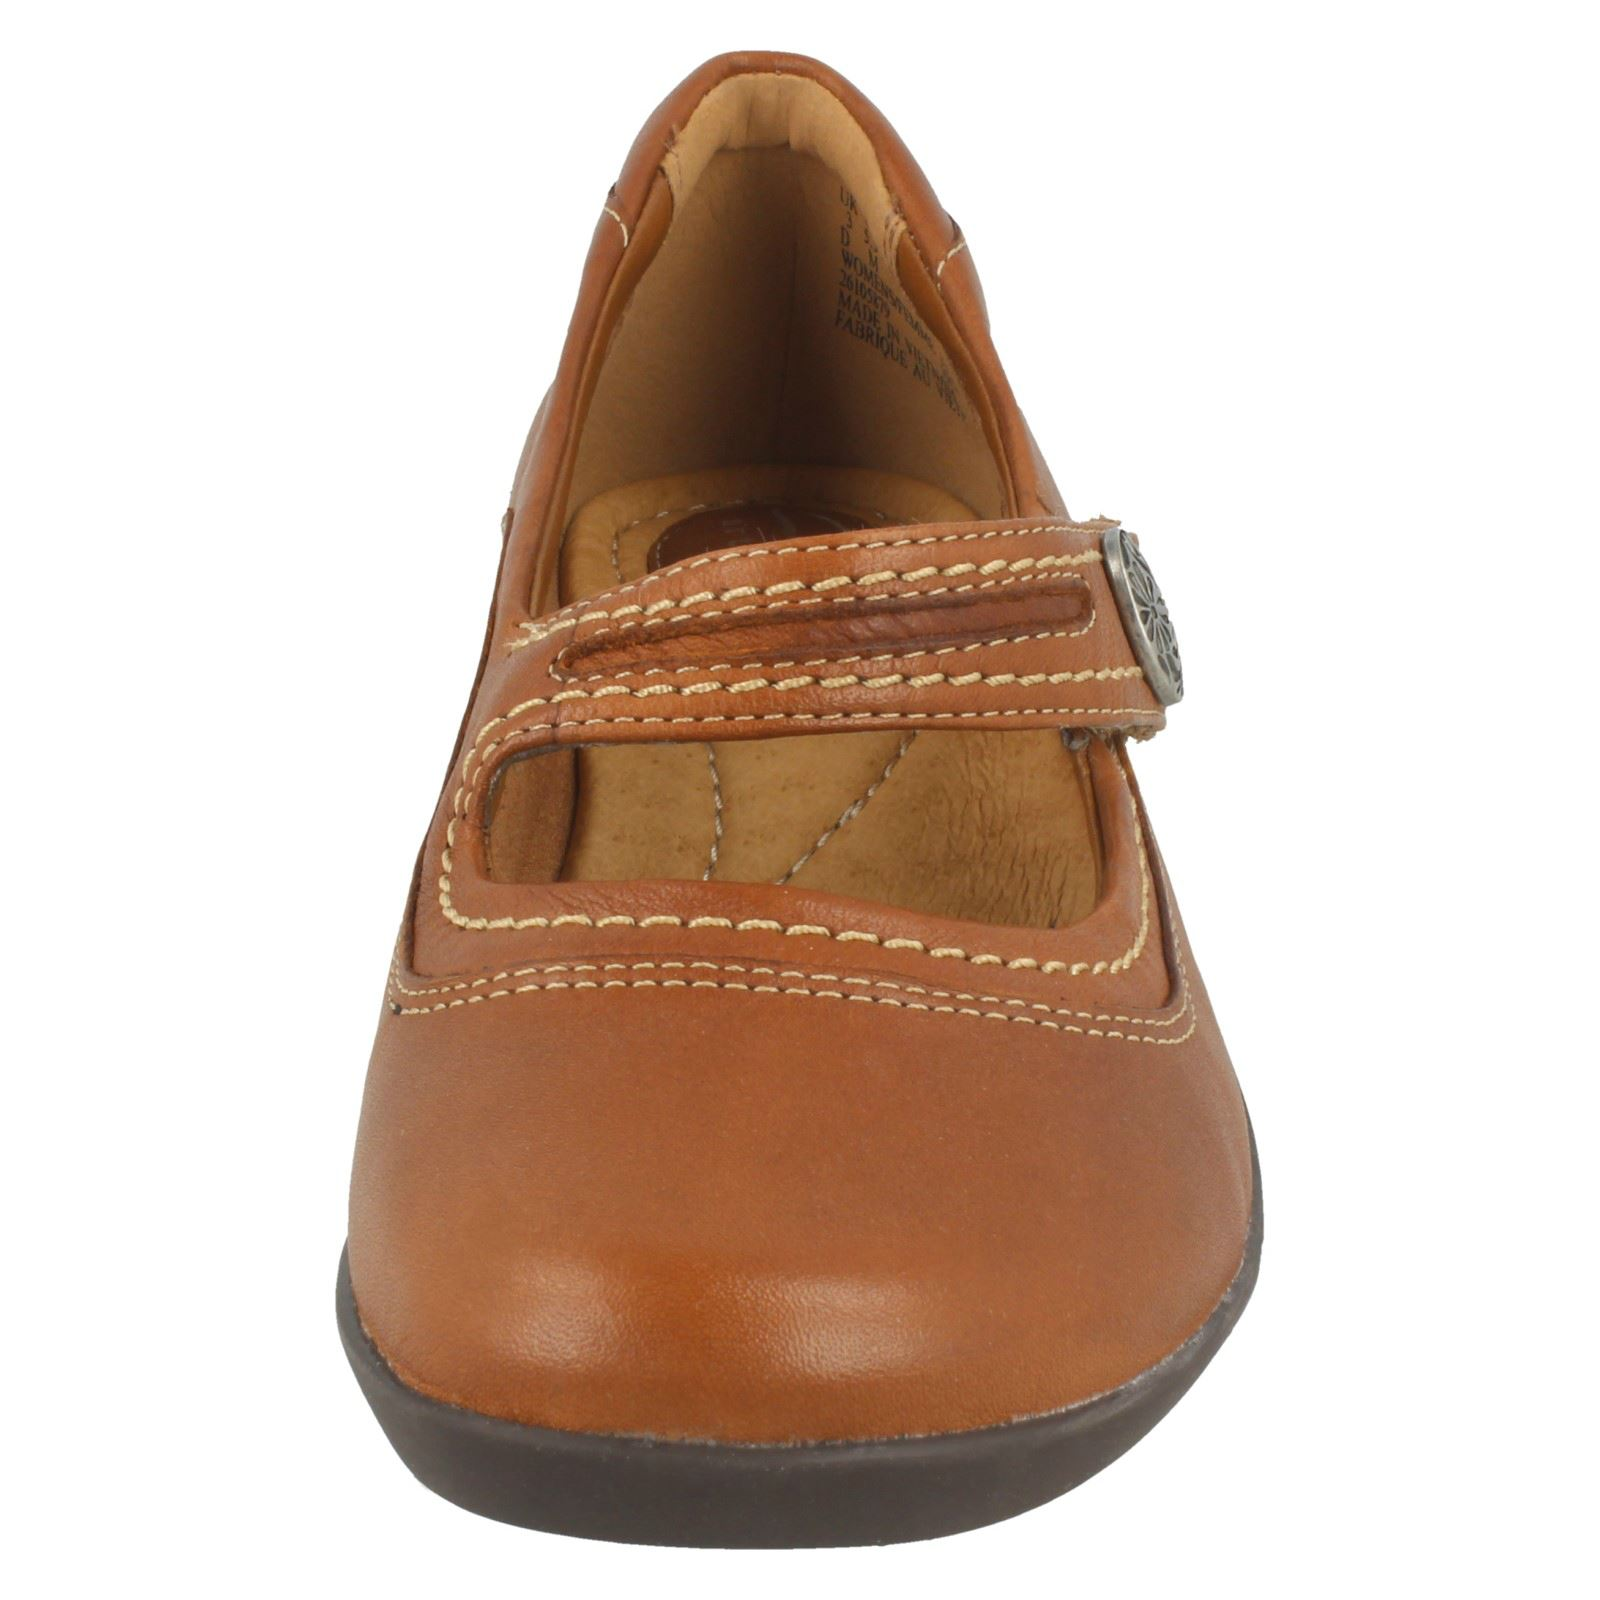 Ladies Ladies Ladies Clarks Comfort Everyday Flats Ordell Becca 9a9e63